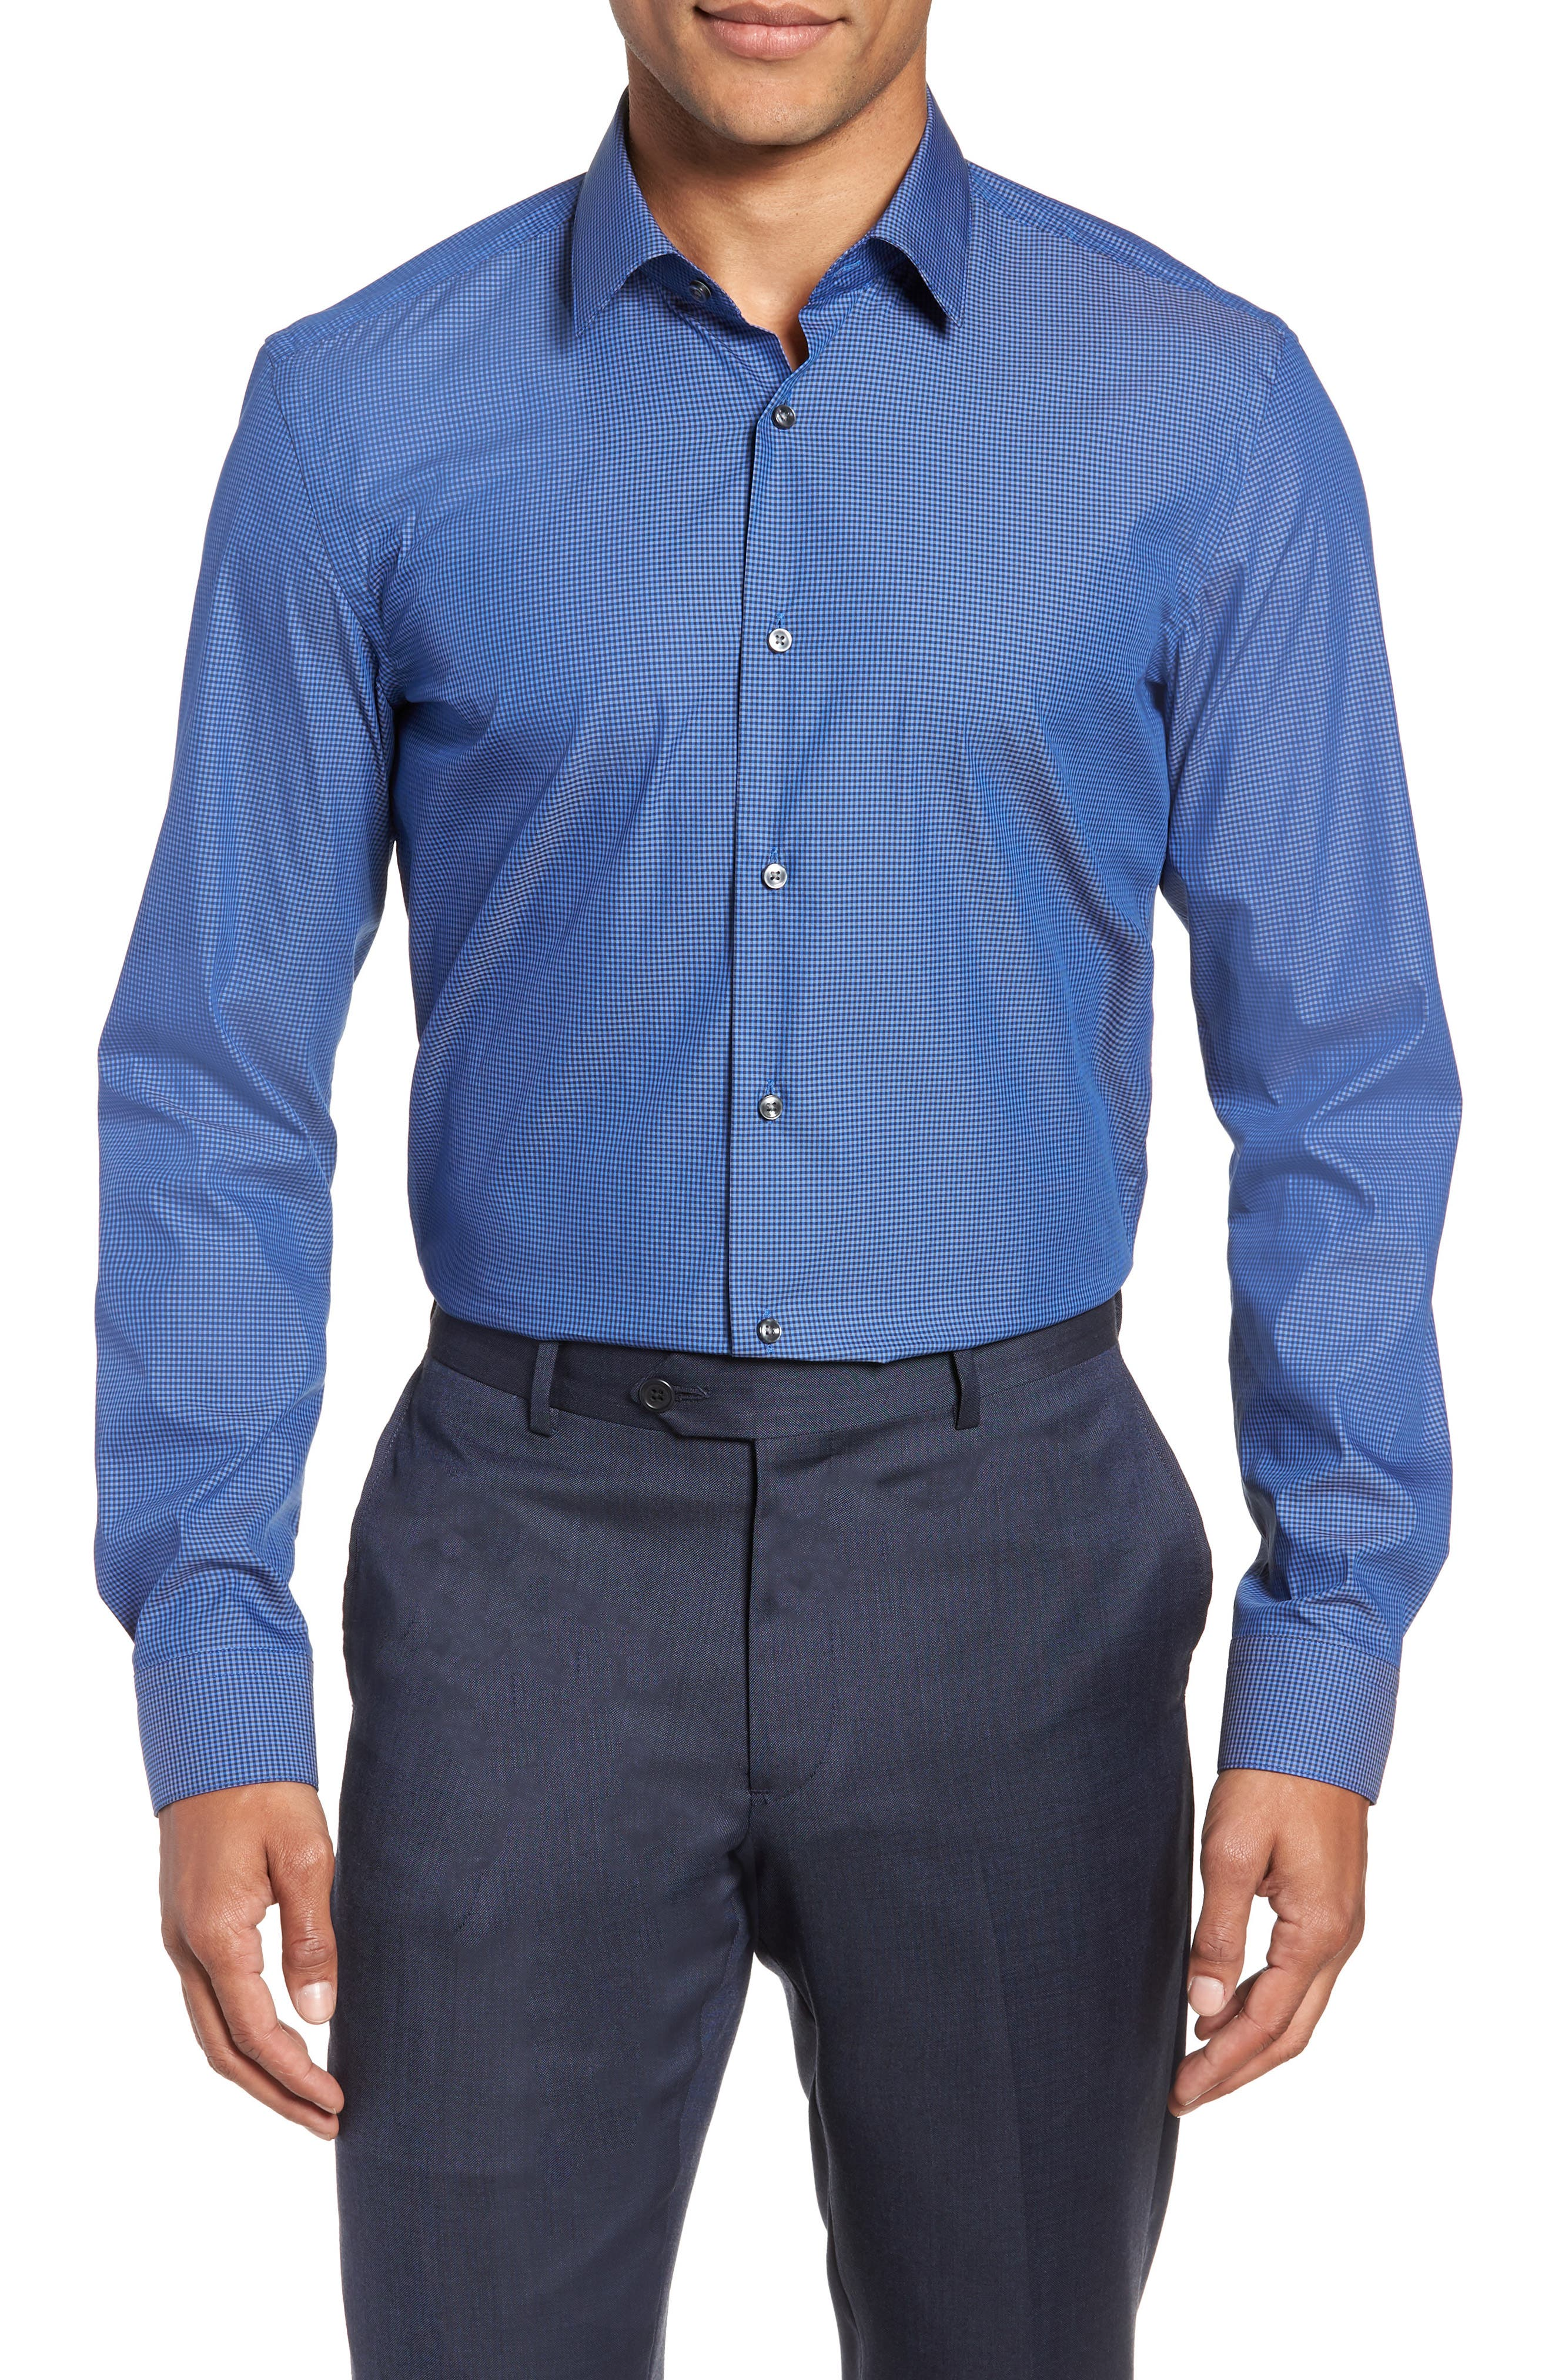 Isko Slim Fit Stretch Check Dress Shirt,                             Main thumbnail 1, color,                             BLUE